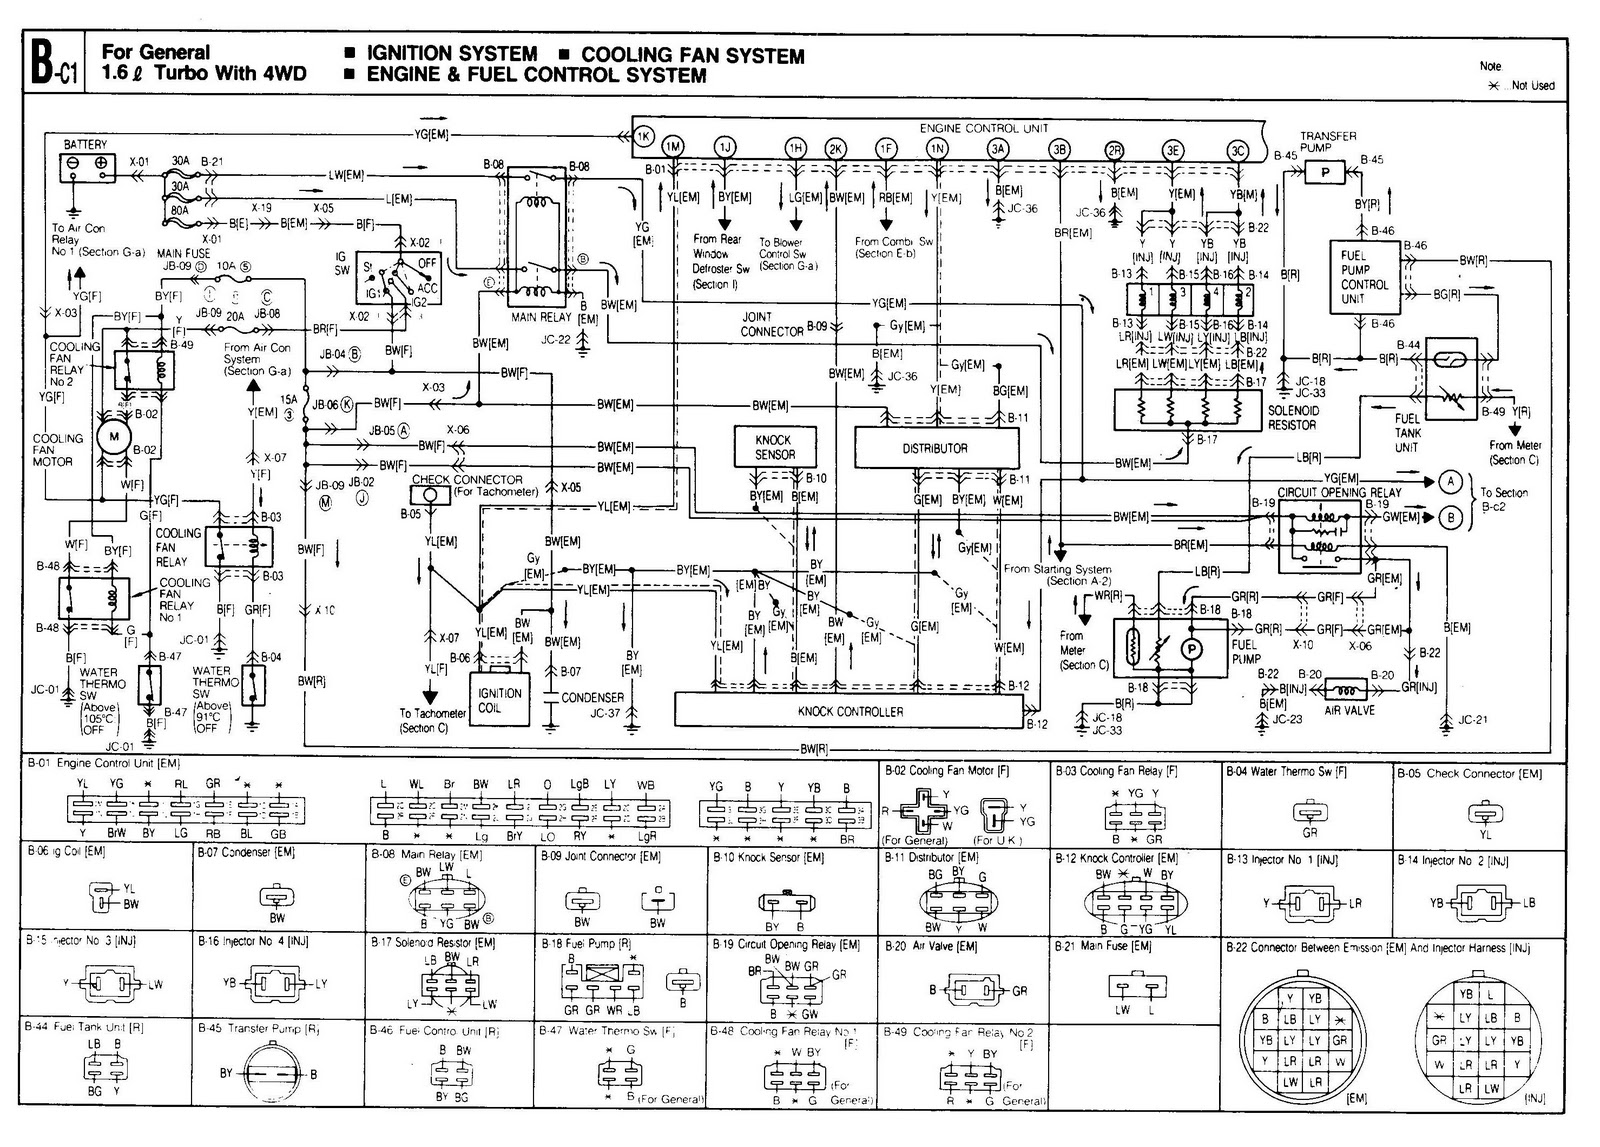 mazda familia engine diagram mazda wiring diagrams